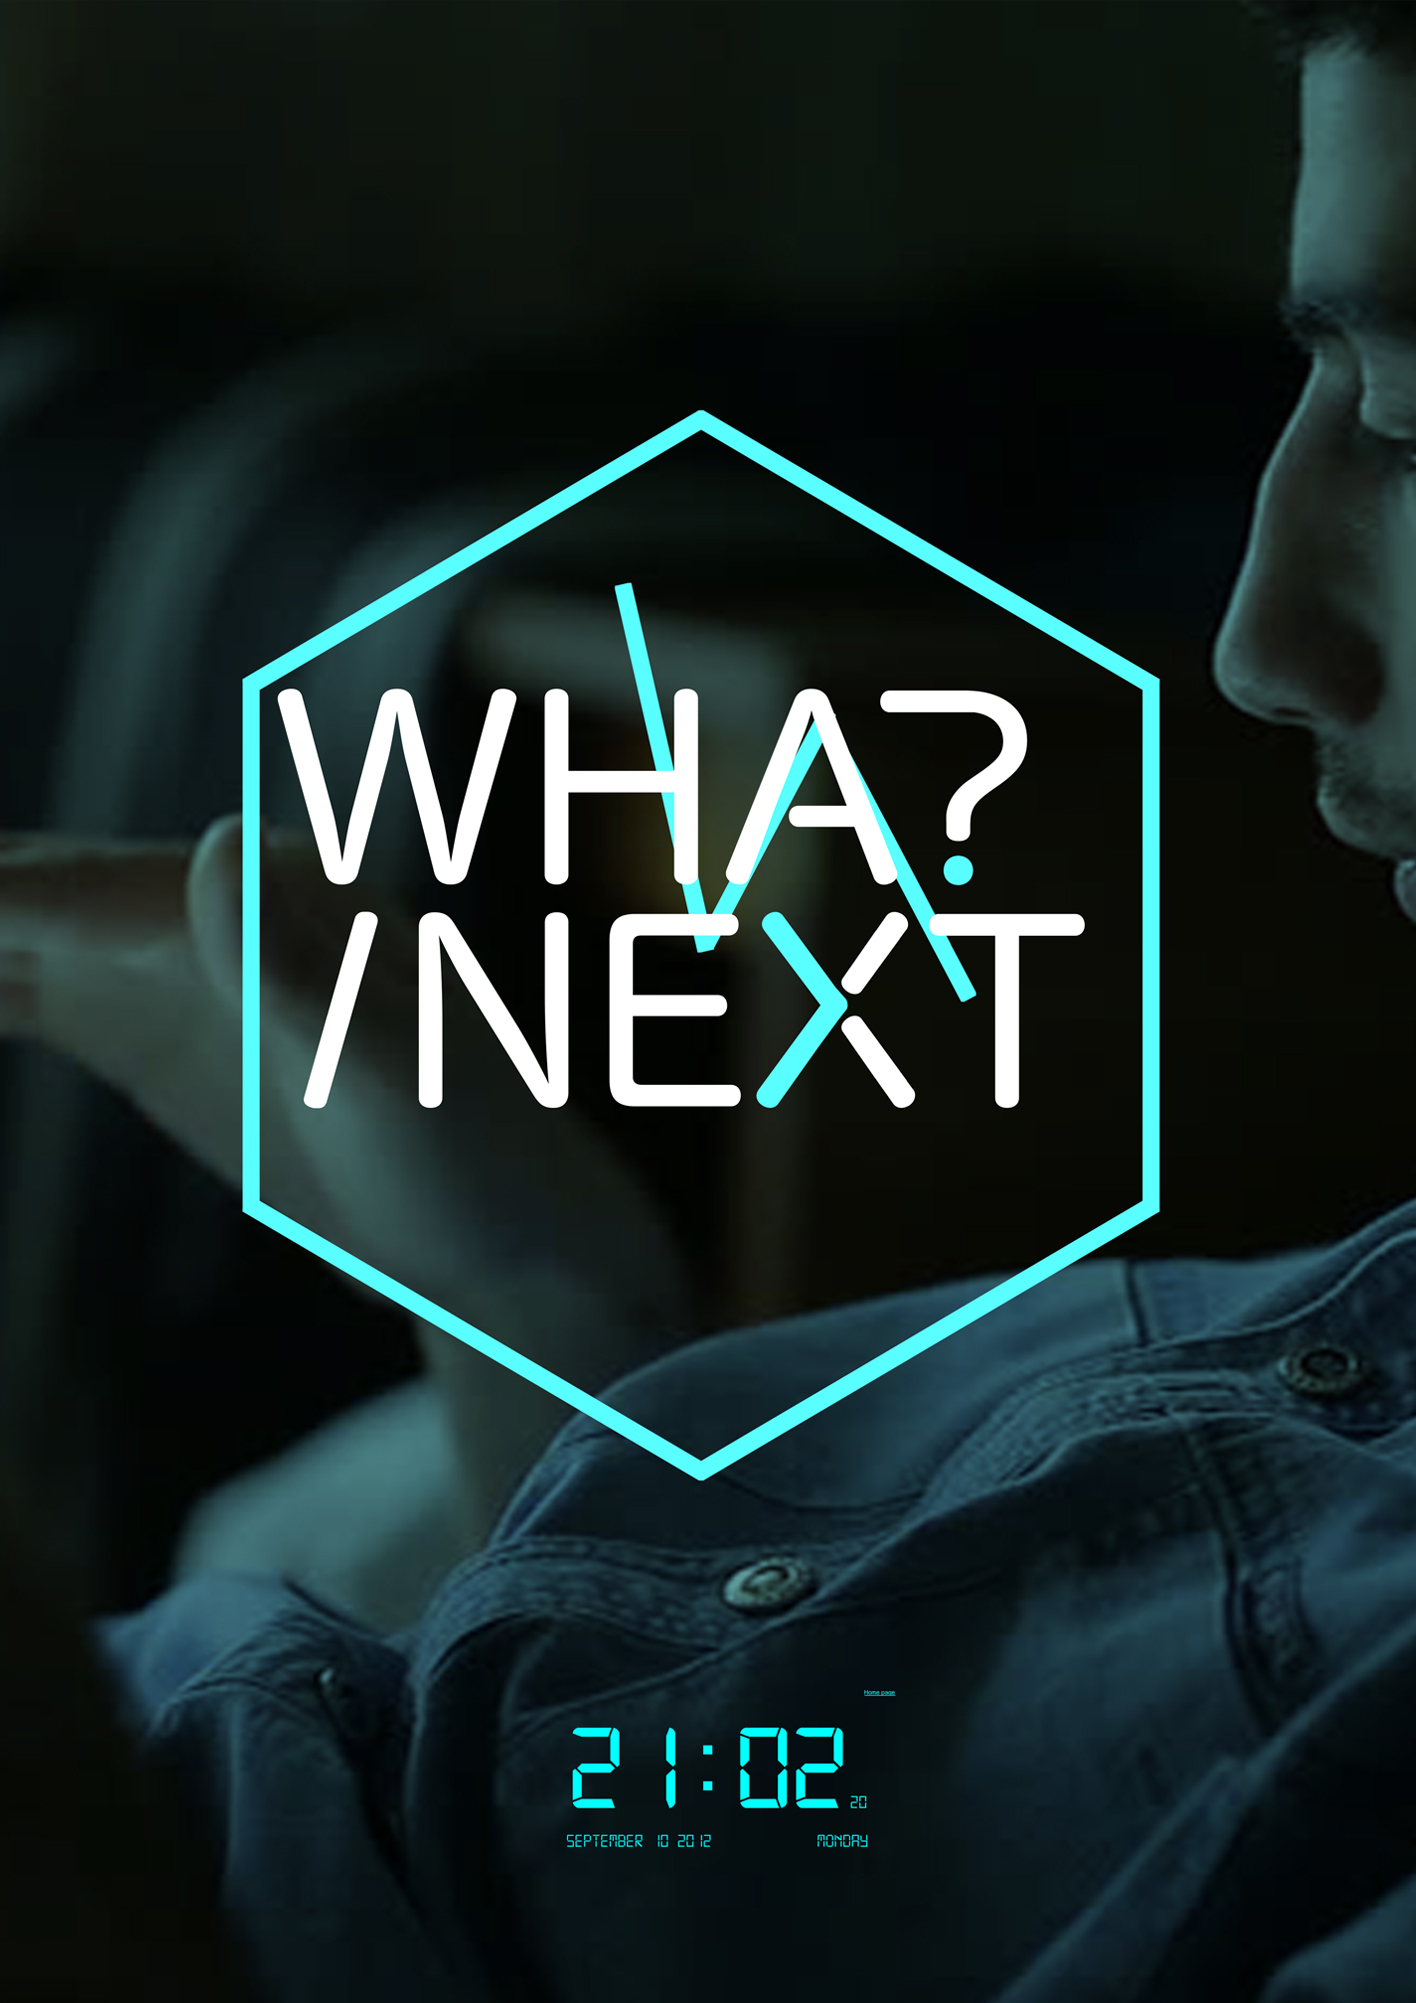 WHAT/NEXT?